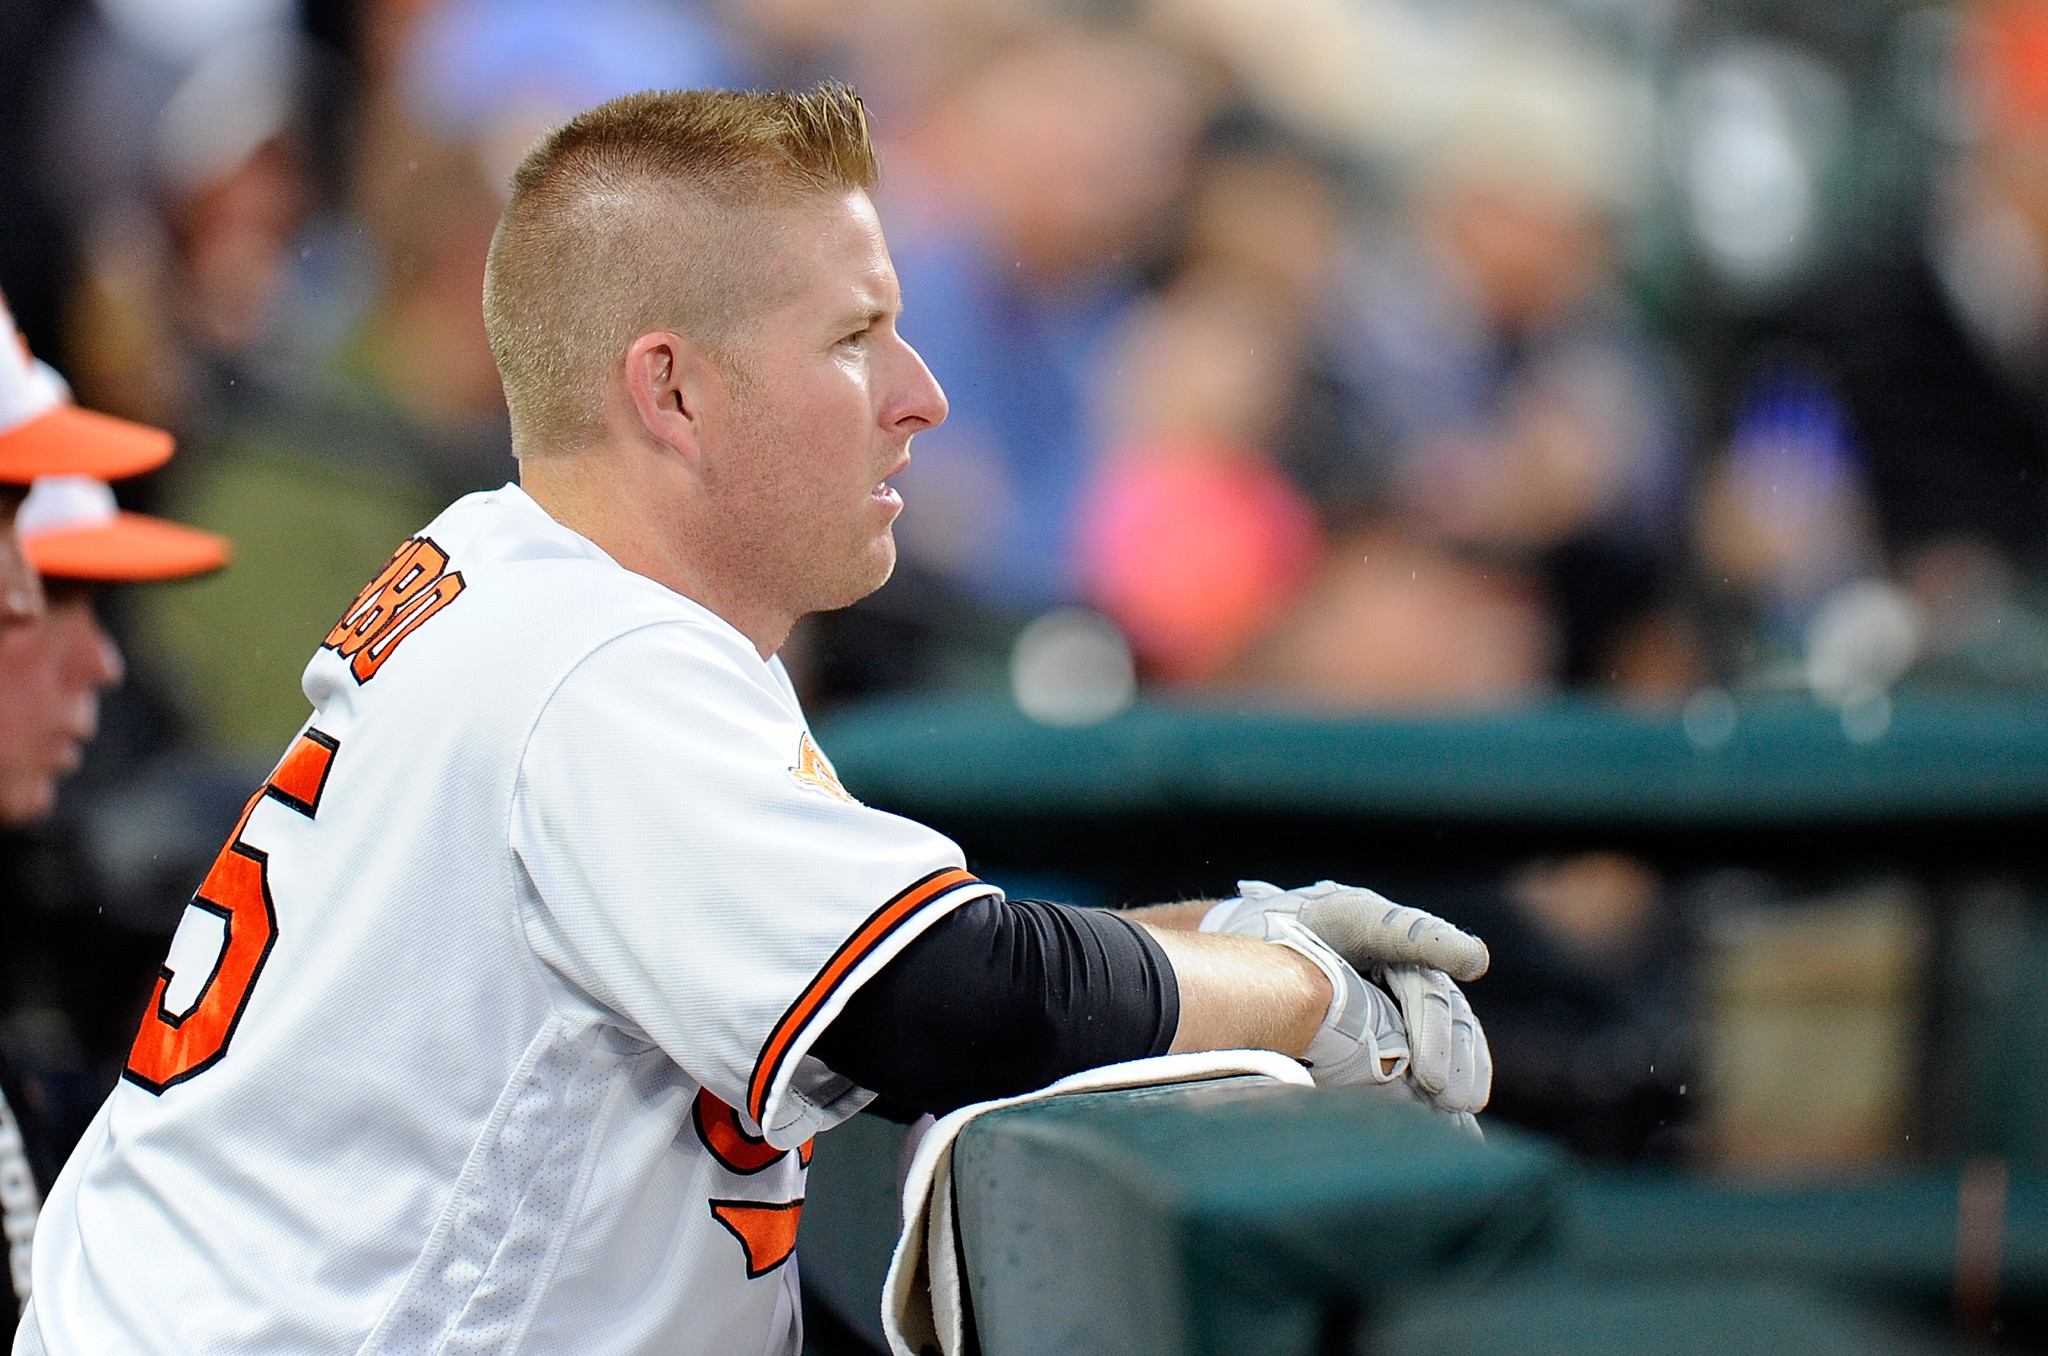 Bal-may-gives-orioles-slugger-mark-trumbo-hope-for-a-turnaround-after-slow-start-20170525